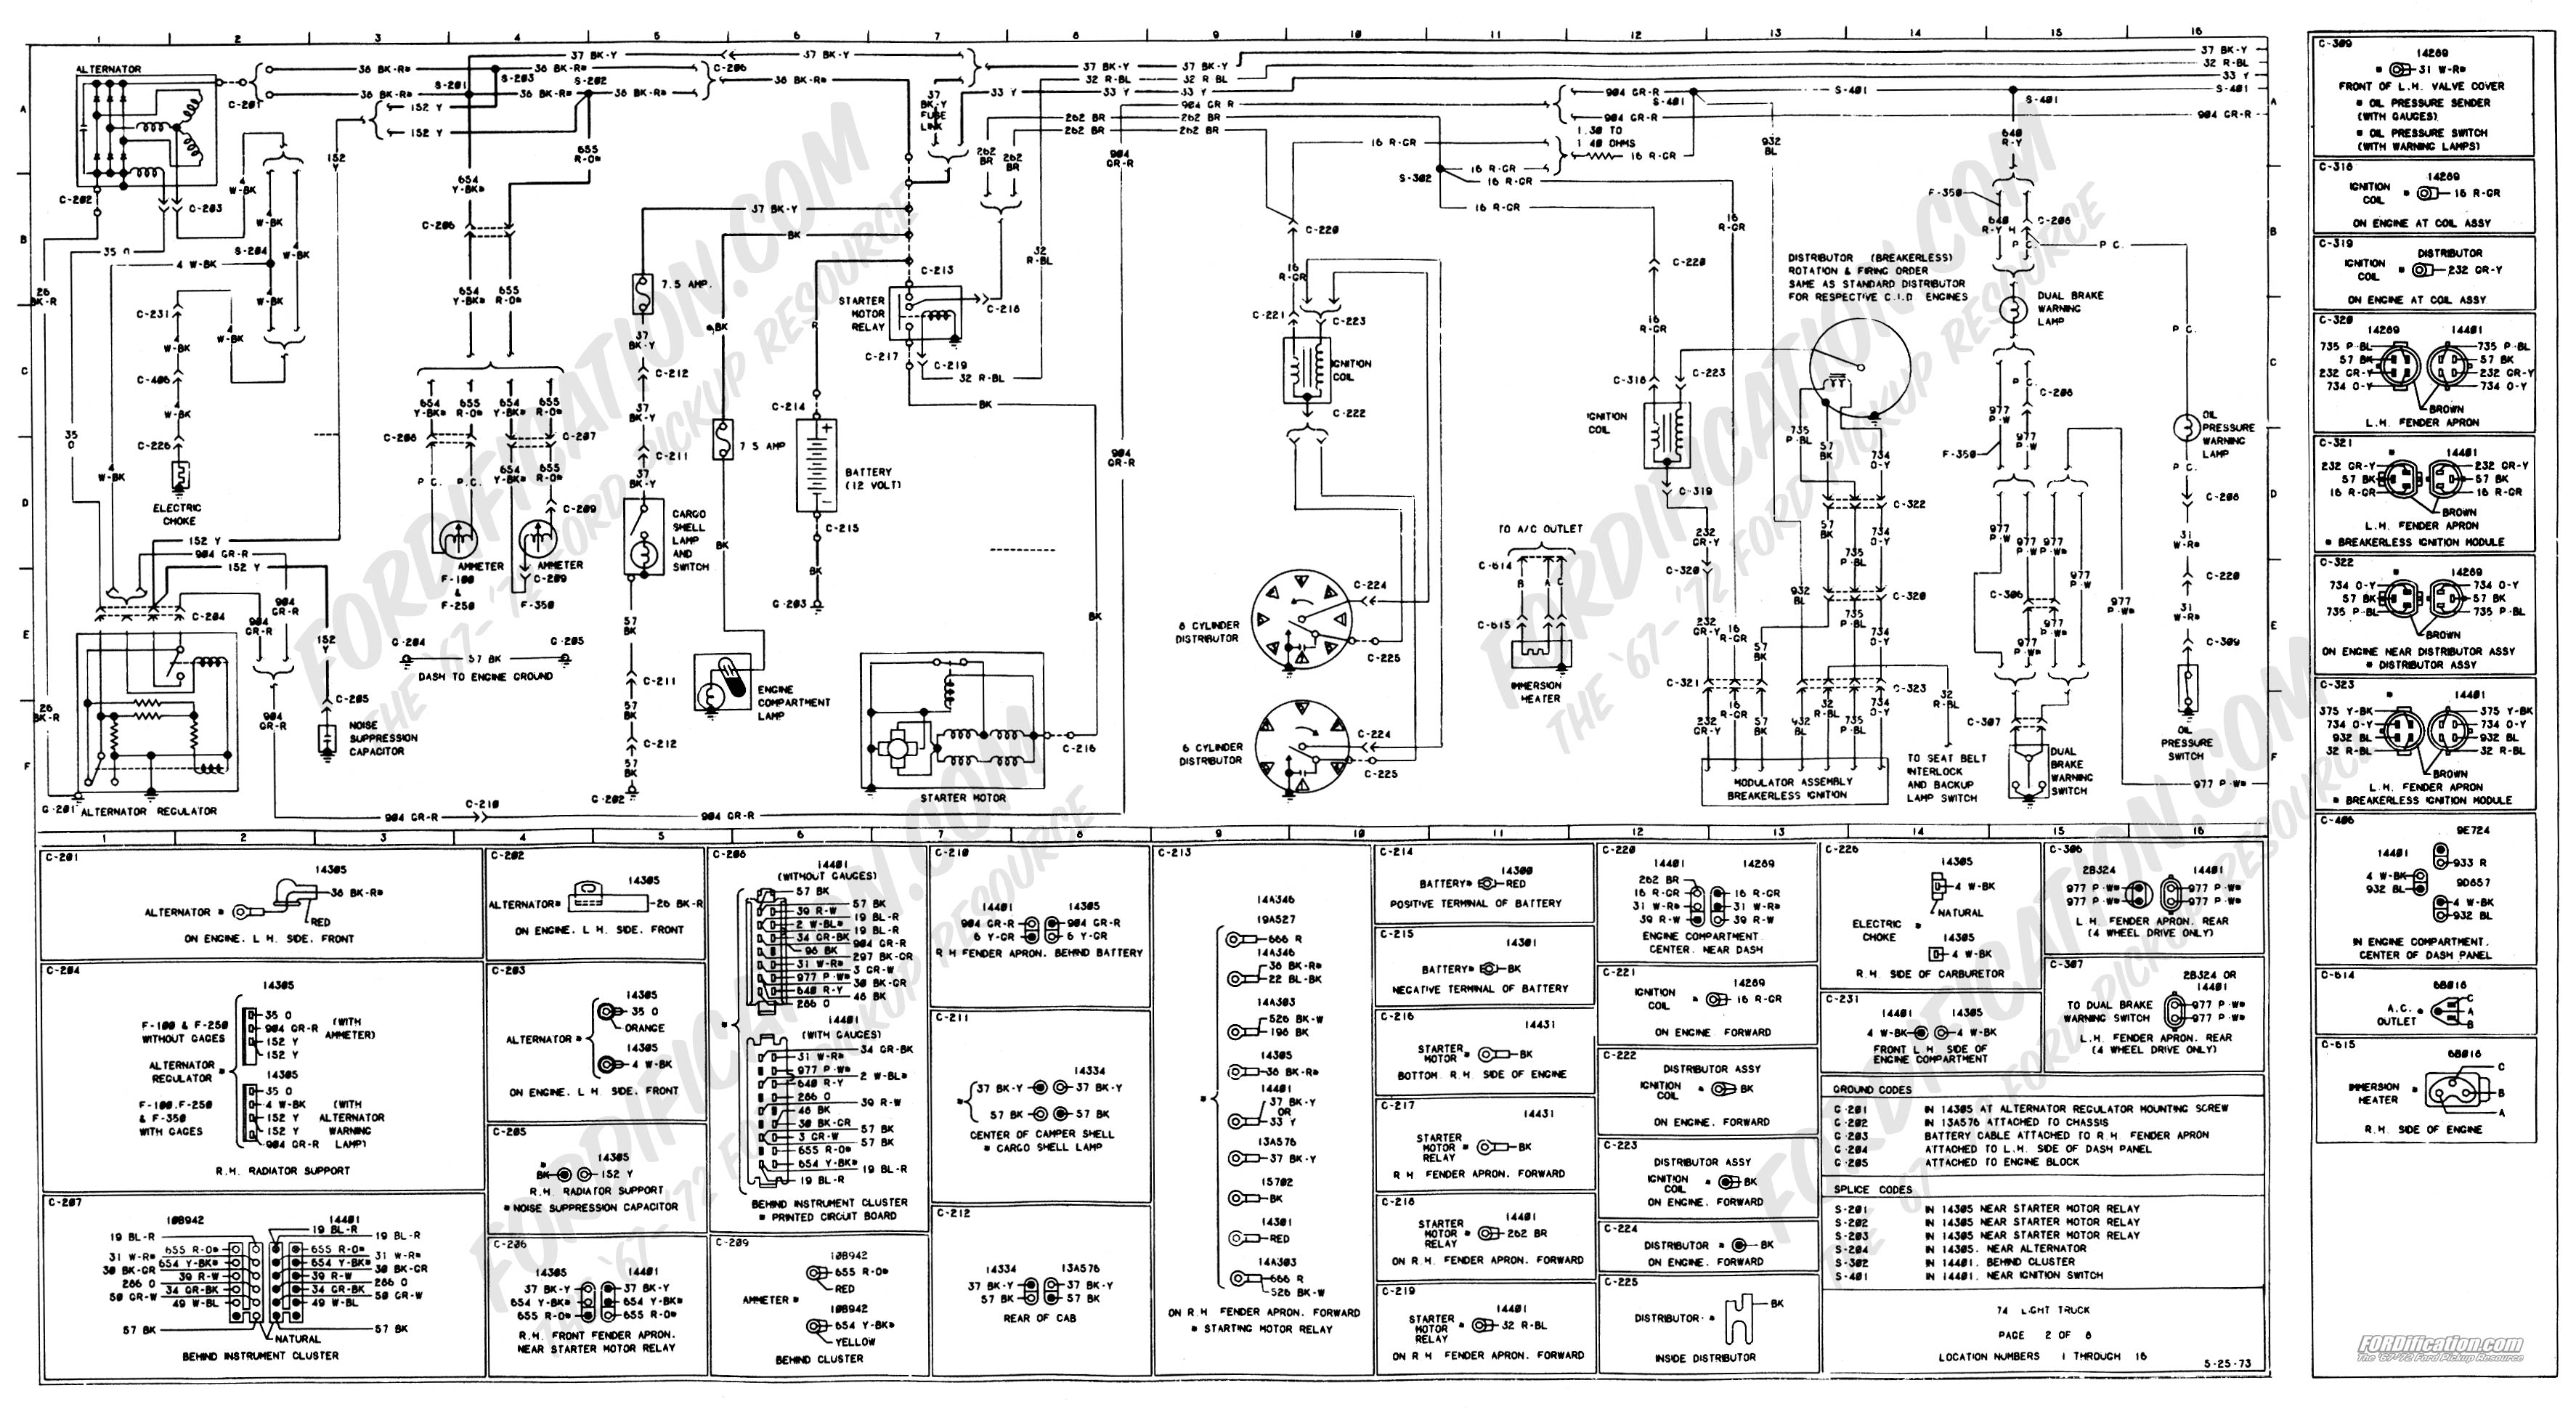 2003 Sterling Wiring Diagram Data Diagrams For Ford E250 Schematics Online 2001 Truck Semi